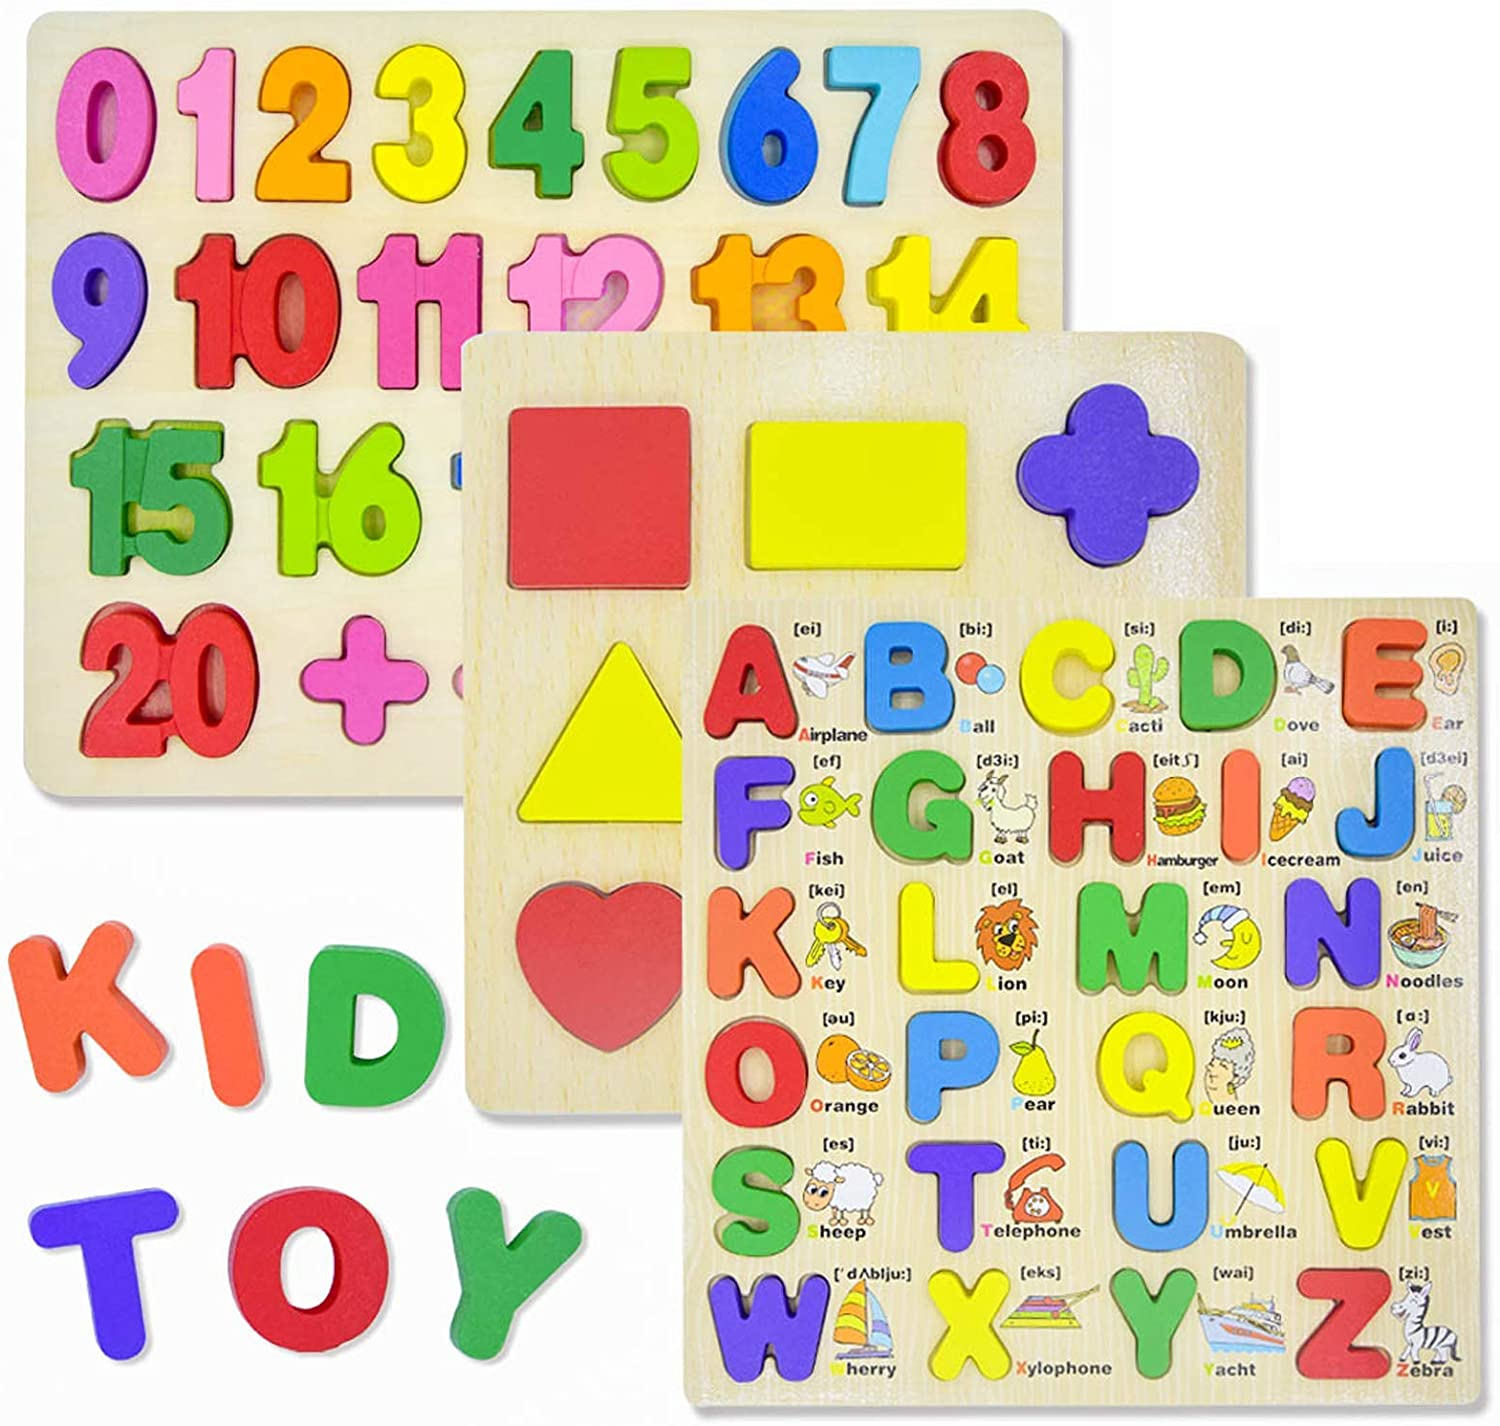 Aubeco Wooden Alphabet Puzzles for Toddlers, Wooden Alphabet Number Shape Learning Puzzles with Water-Based Paint, Toddler Early Educational Toy for Kids Ages 2 3 4 5 6 (Set of 3)